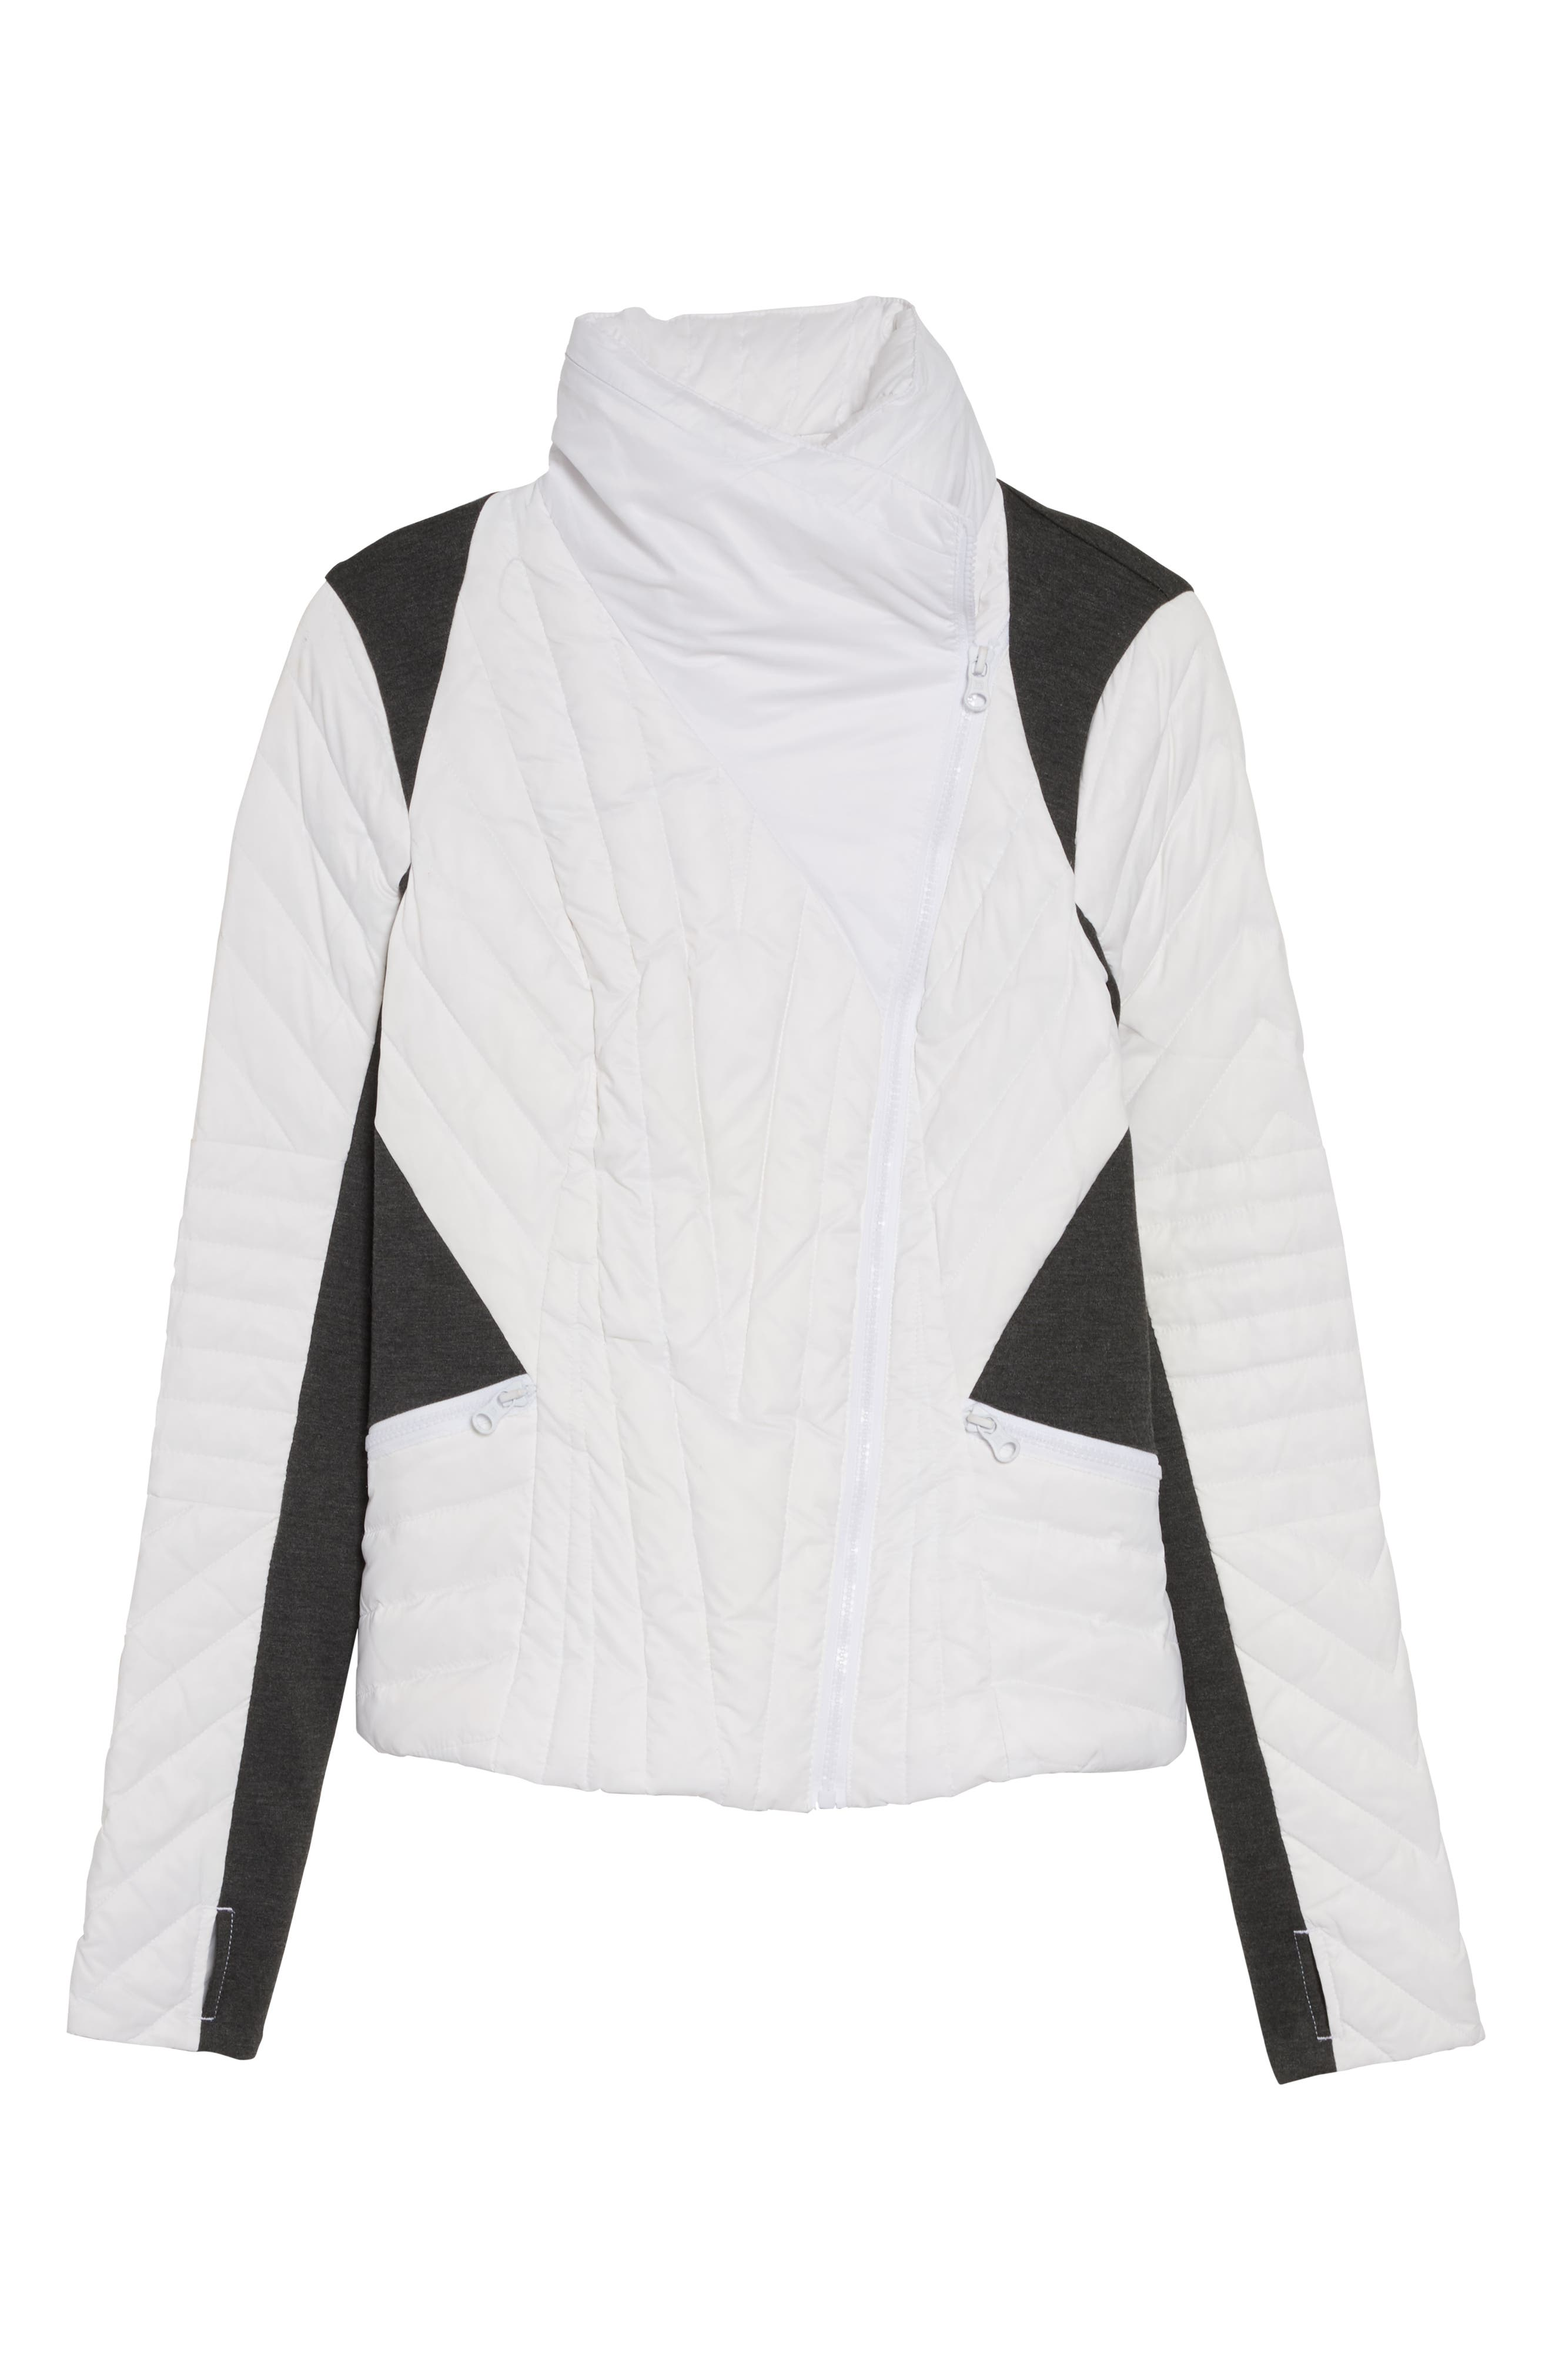 BLANC NOIR,                             Motion Panel Down Puffer Jacket,                             Alternate thumbnail 6, color,                             WHITE/ HEATHER GREY